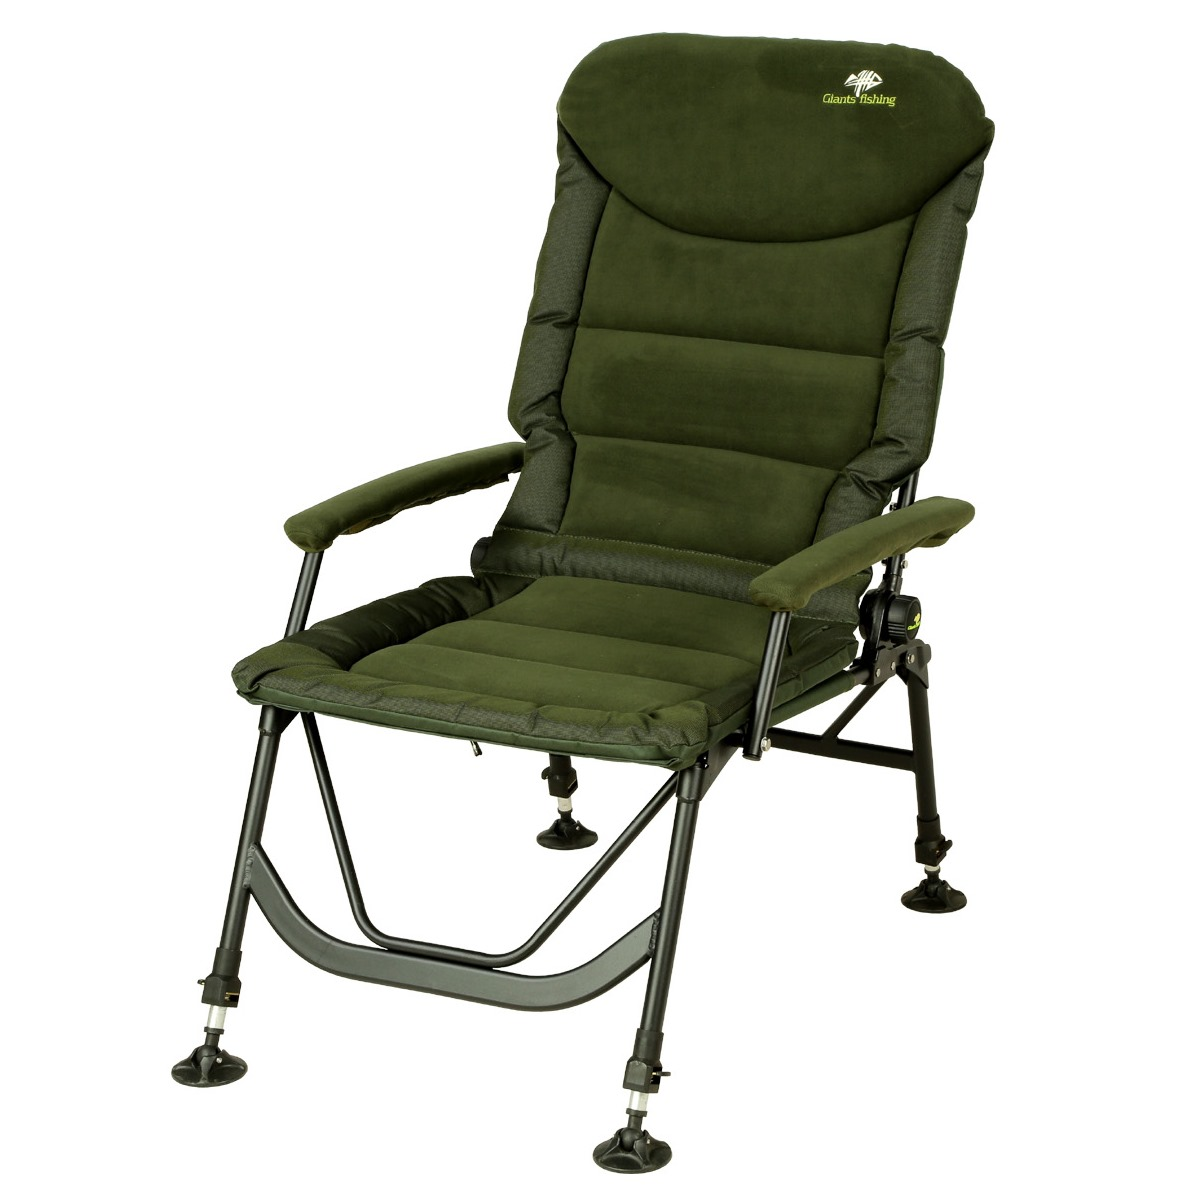 GIANTS FISHING - Sedačka RWX Large Fleece Chair